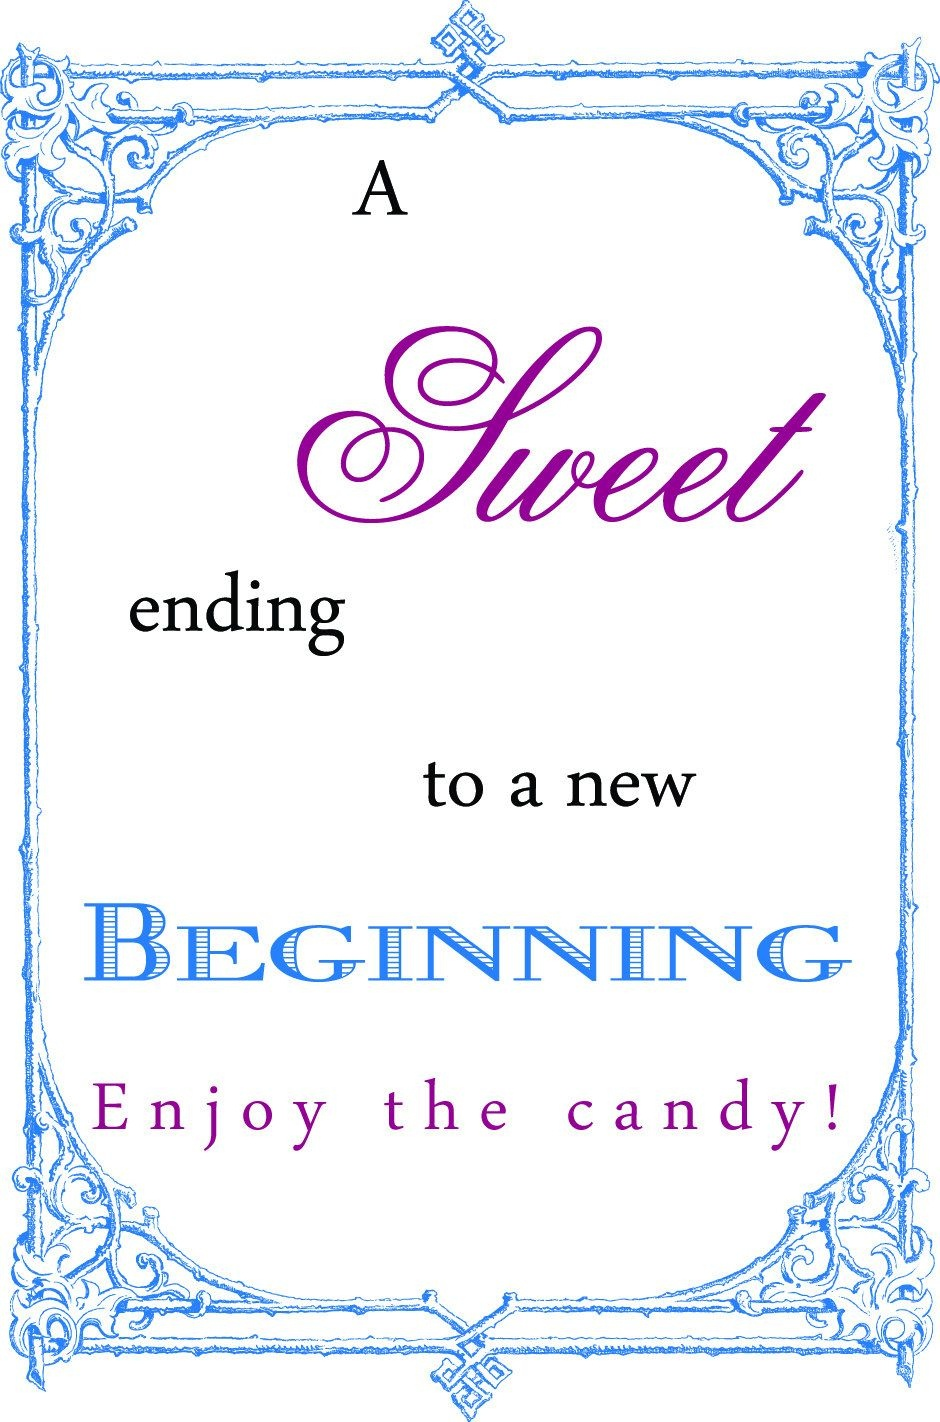 Free Printable Wedding Candy Buffet Signs   Wedding   Candy Bar - Free Printable Candy Table Labels